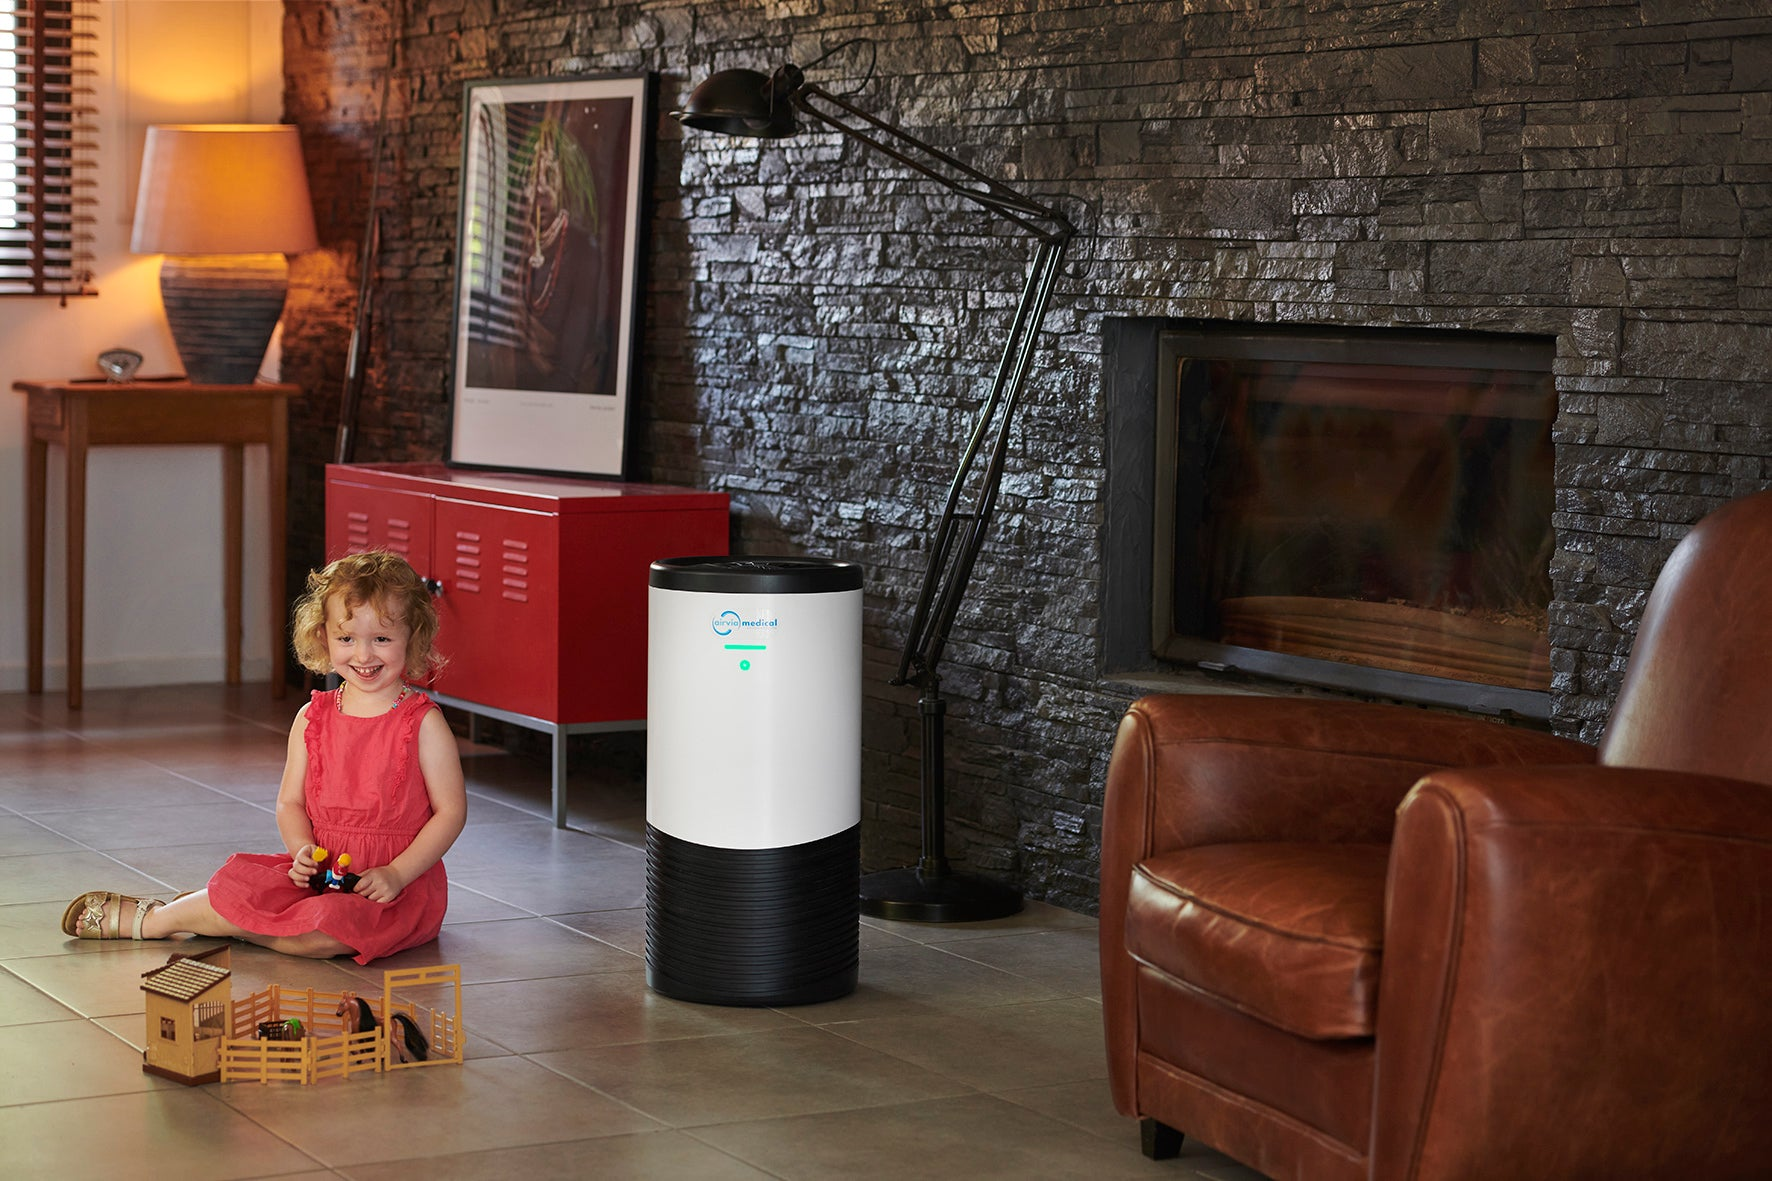 AIRVIA AERO 100 air purifier in a living room